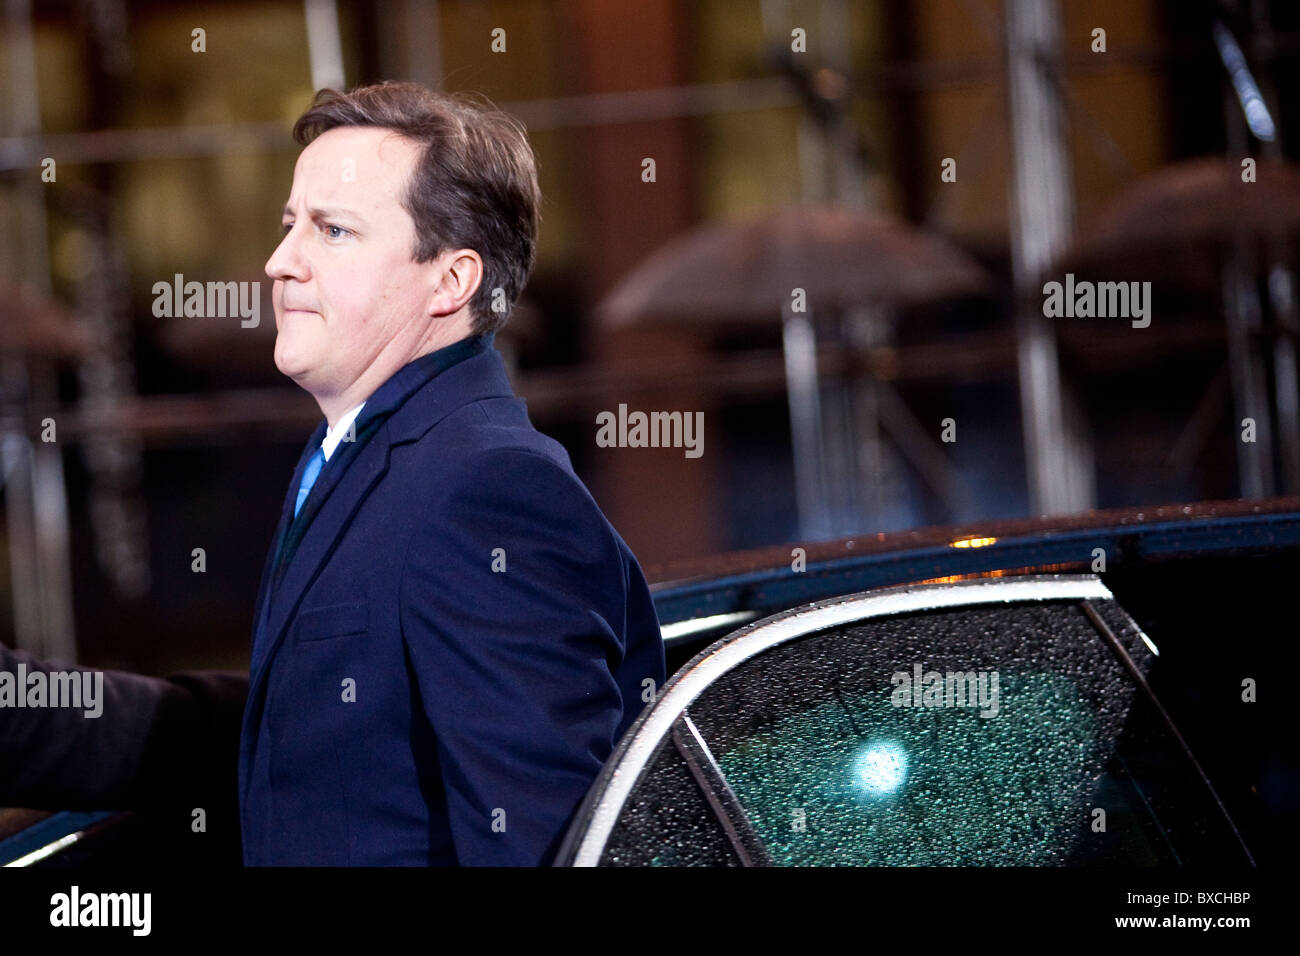 UK prime minister David Cameron arrives to the EU Summit on 16 december 2010 Stock Photo